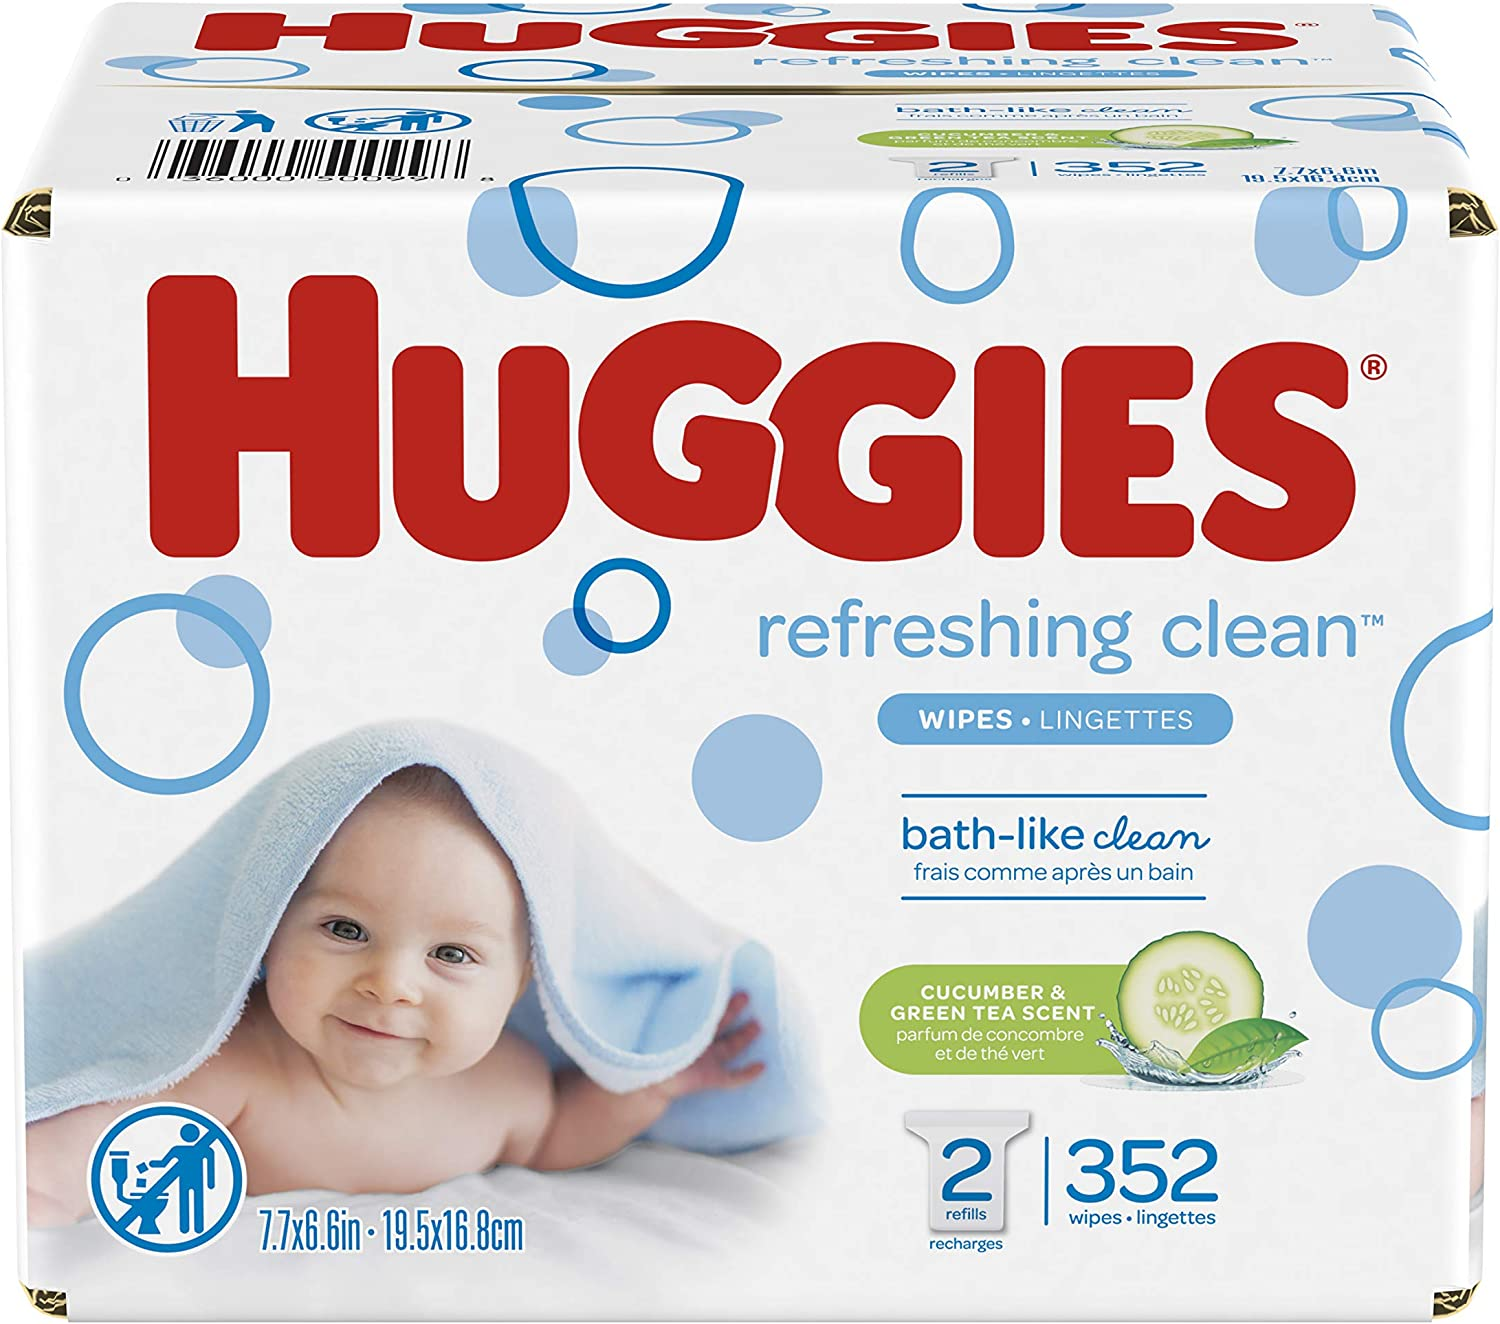 HUGGIES Refreshing Clean Scented Baby Wipes, Hypoallergenic, 2 Refill Packs (352 Total Wipes), Size 1